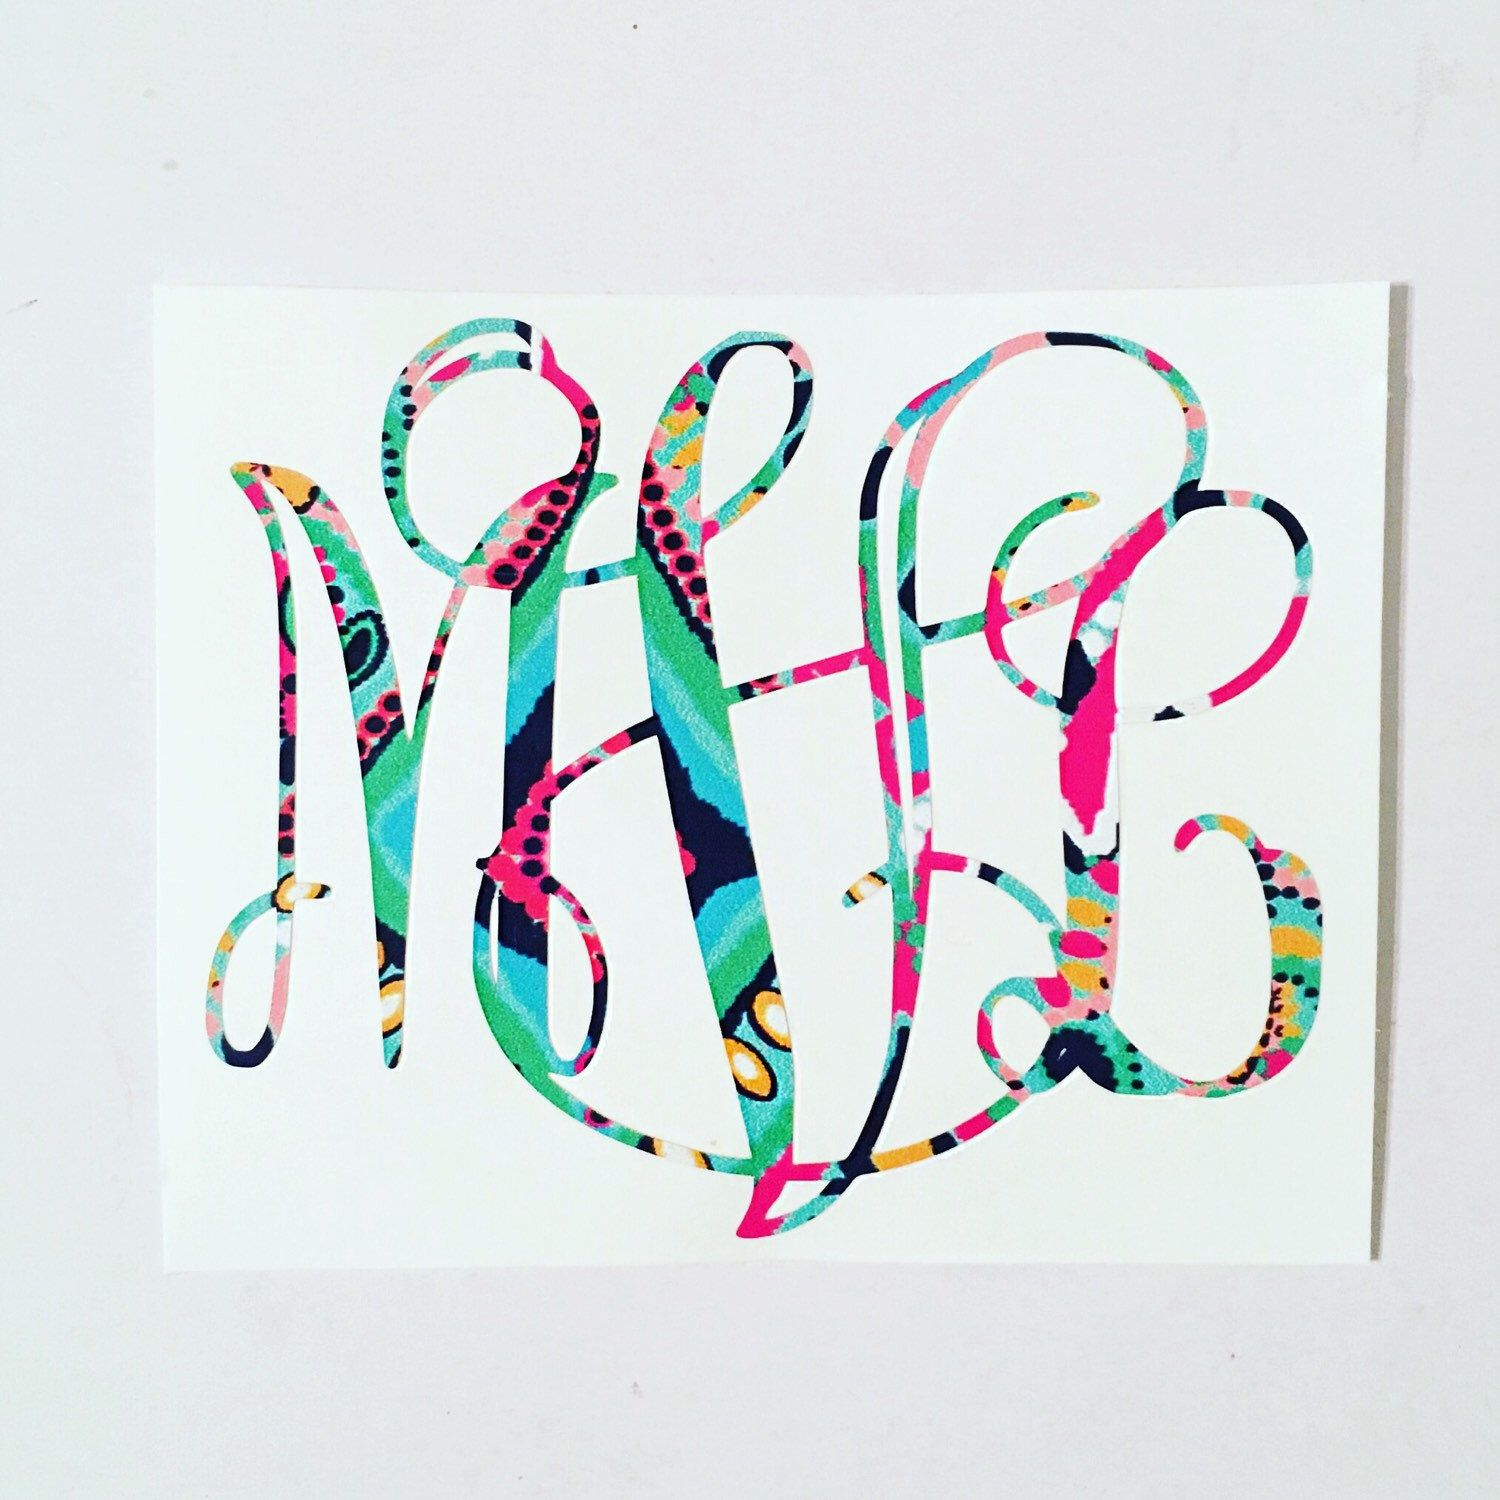 Lilly Pulitzer Vine monogram decal